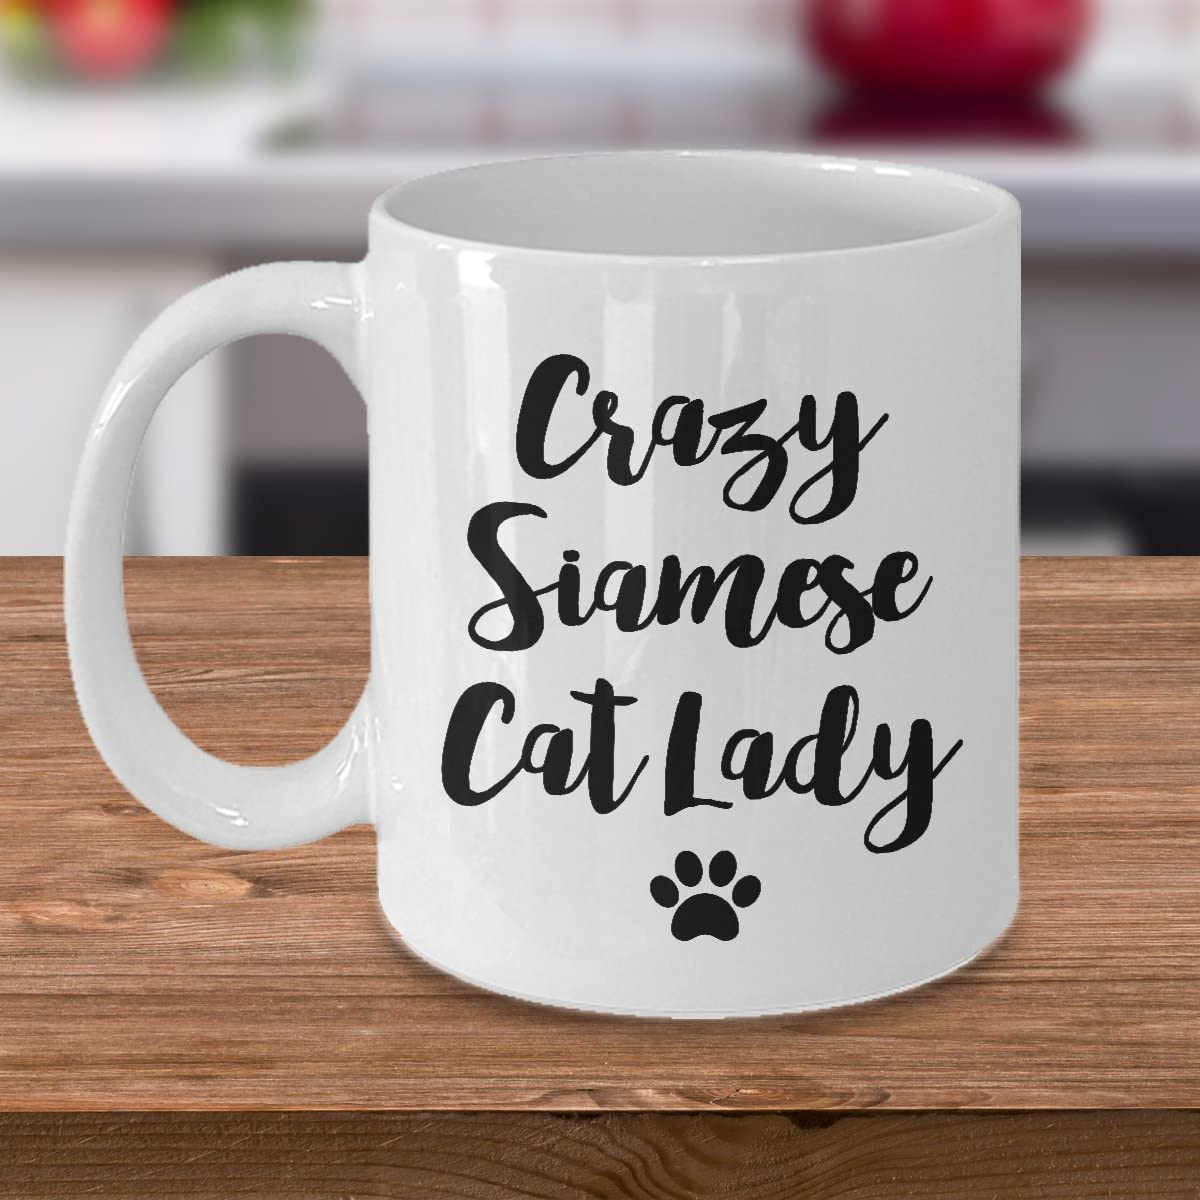 Amazon Com Siamese Cat Mug Crazy Cat Lady Funny Cat Lover Coffee Cup Gift 11 Oz Kitchen Dining